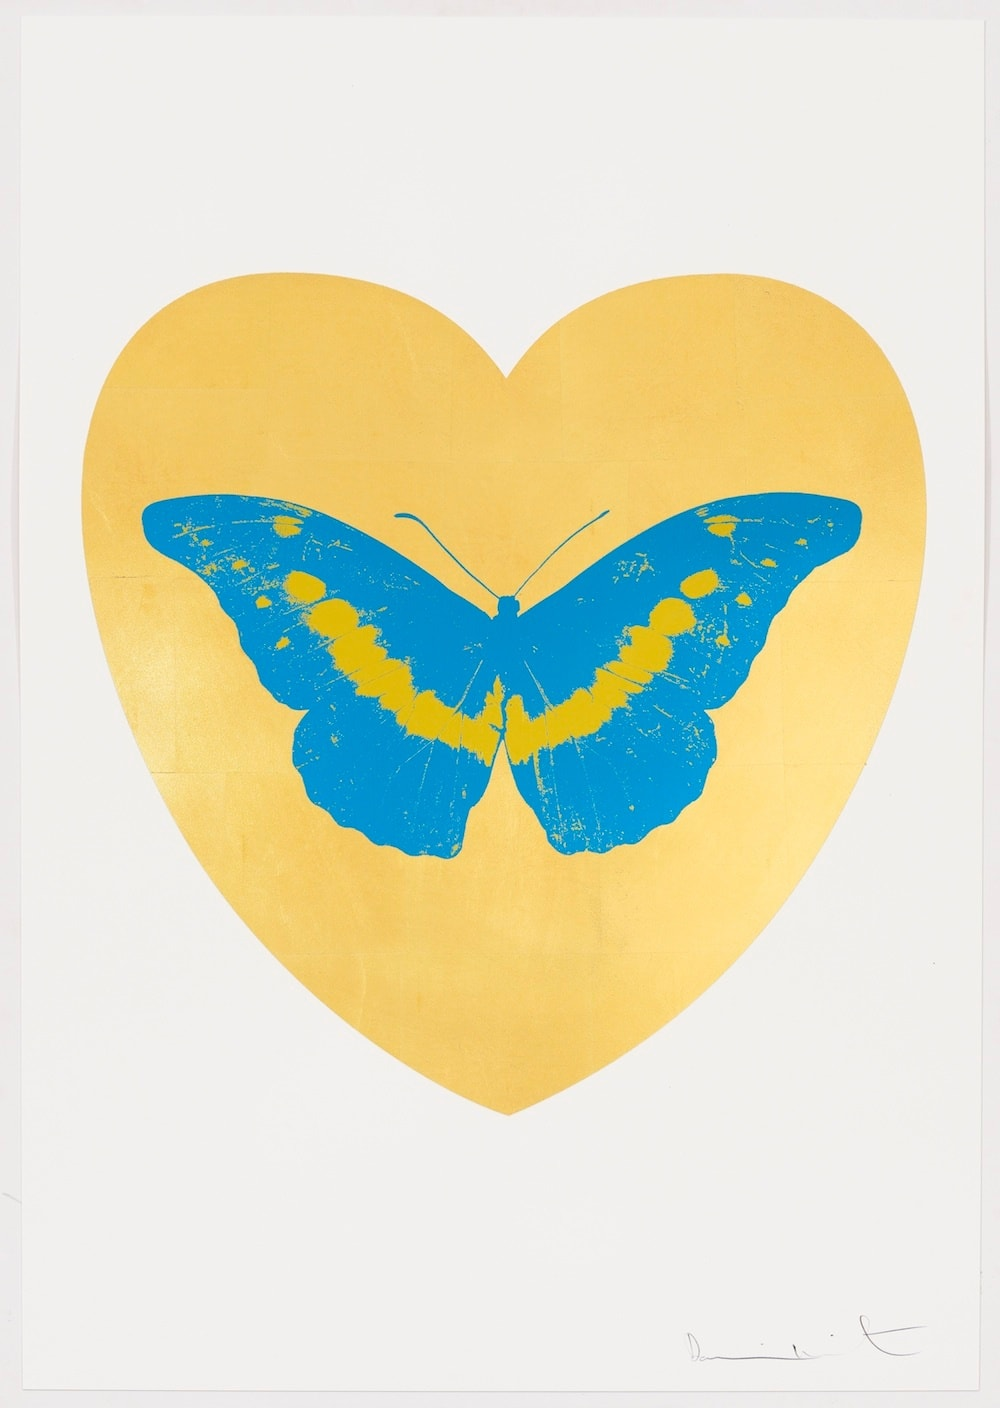 Damien Hirst I Love You - gold leaf, turquoise, oriental gold, 2015 Gold leaf and 2 colour foil block on Somerset Satin 410gsm. OC10328 100 x 70 cm Edition of 14 Signed and numbered